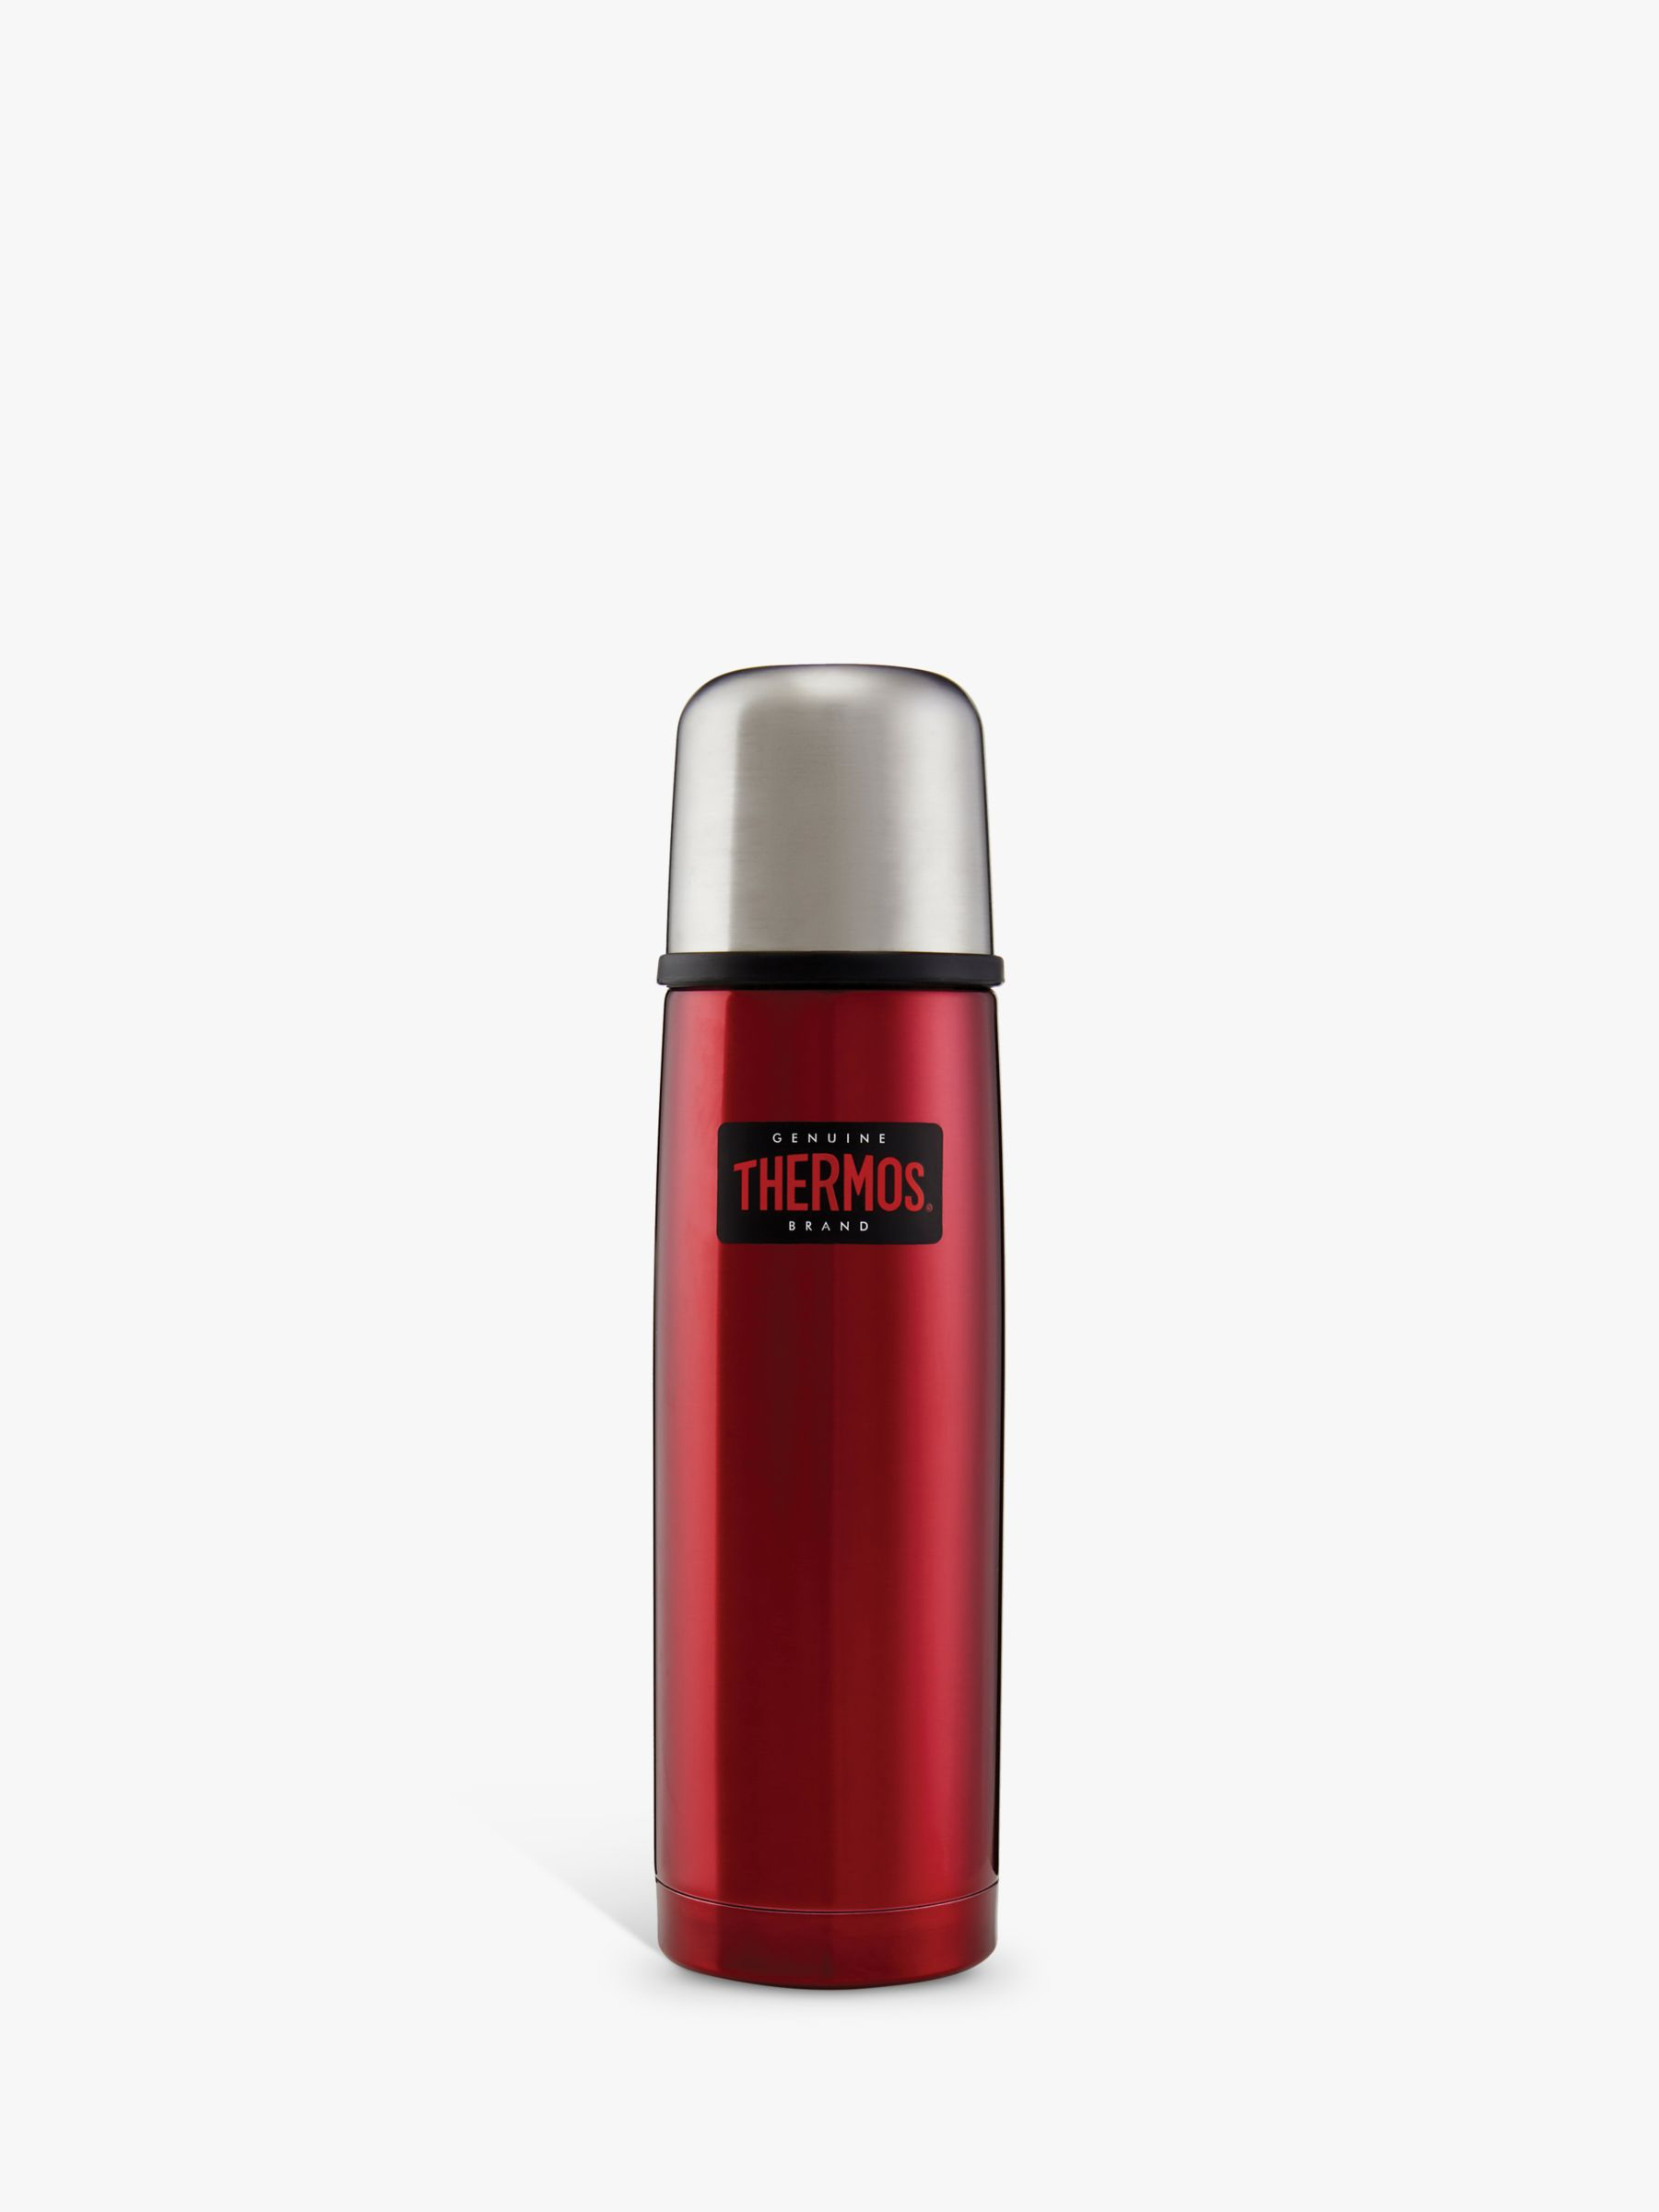 Thermos Thermos Light & Compact Stainless Steel Flask, 500ml, Red